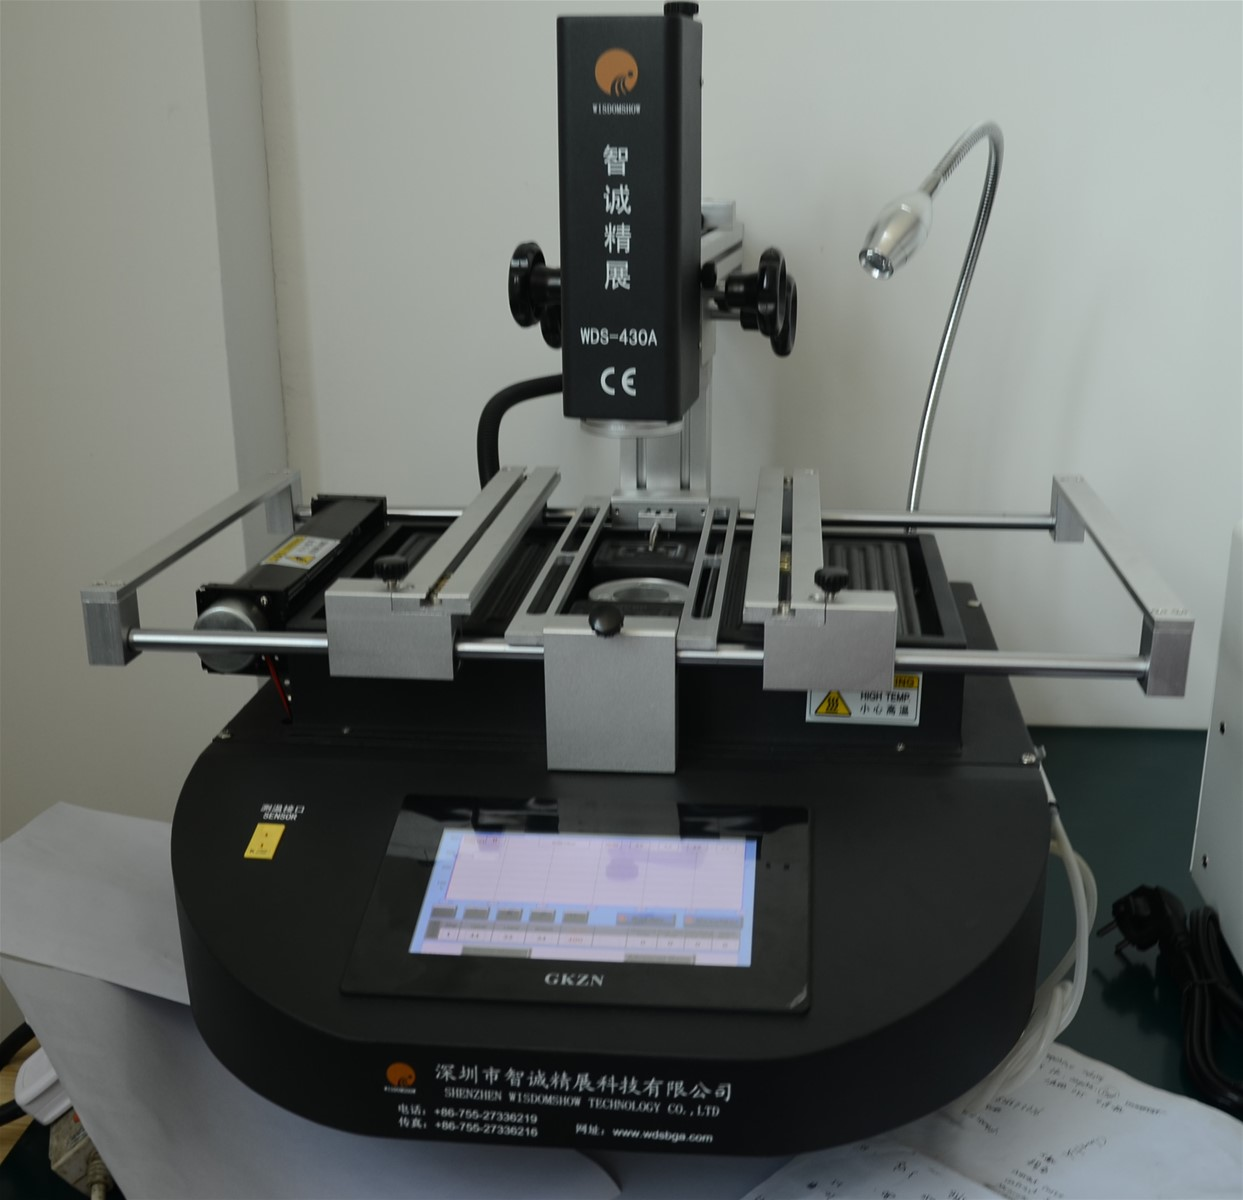 Laptop Bga Chips Soldering Station Wds 430 Infrared Solder And Tool Kit 12 Different Tools Circuit Board Repair Desolder